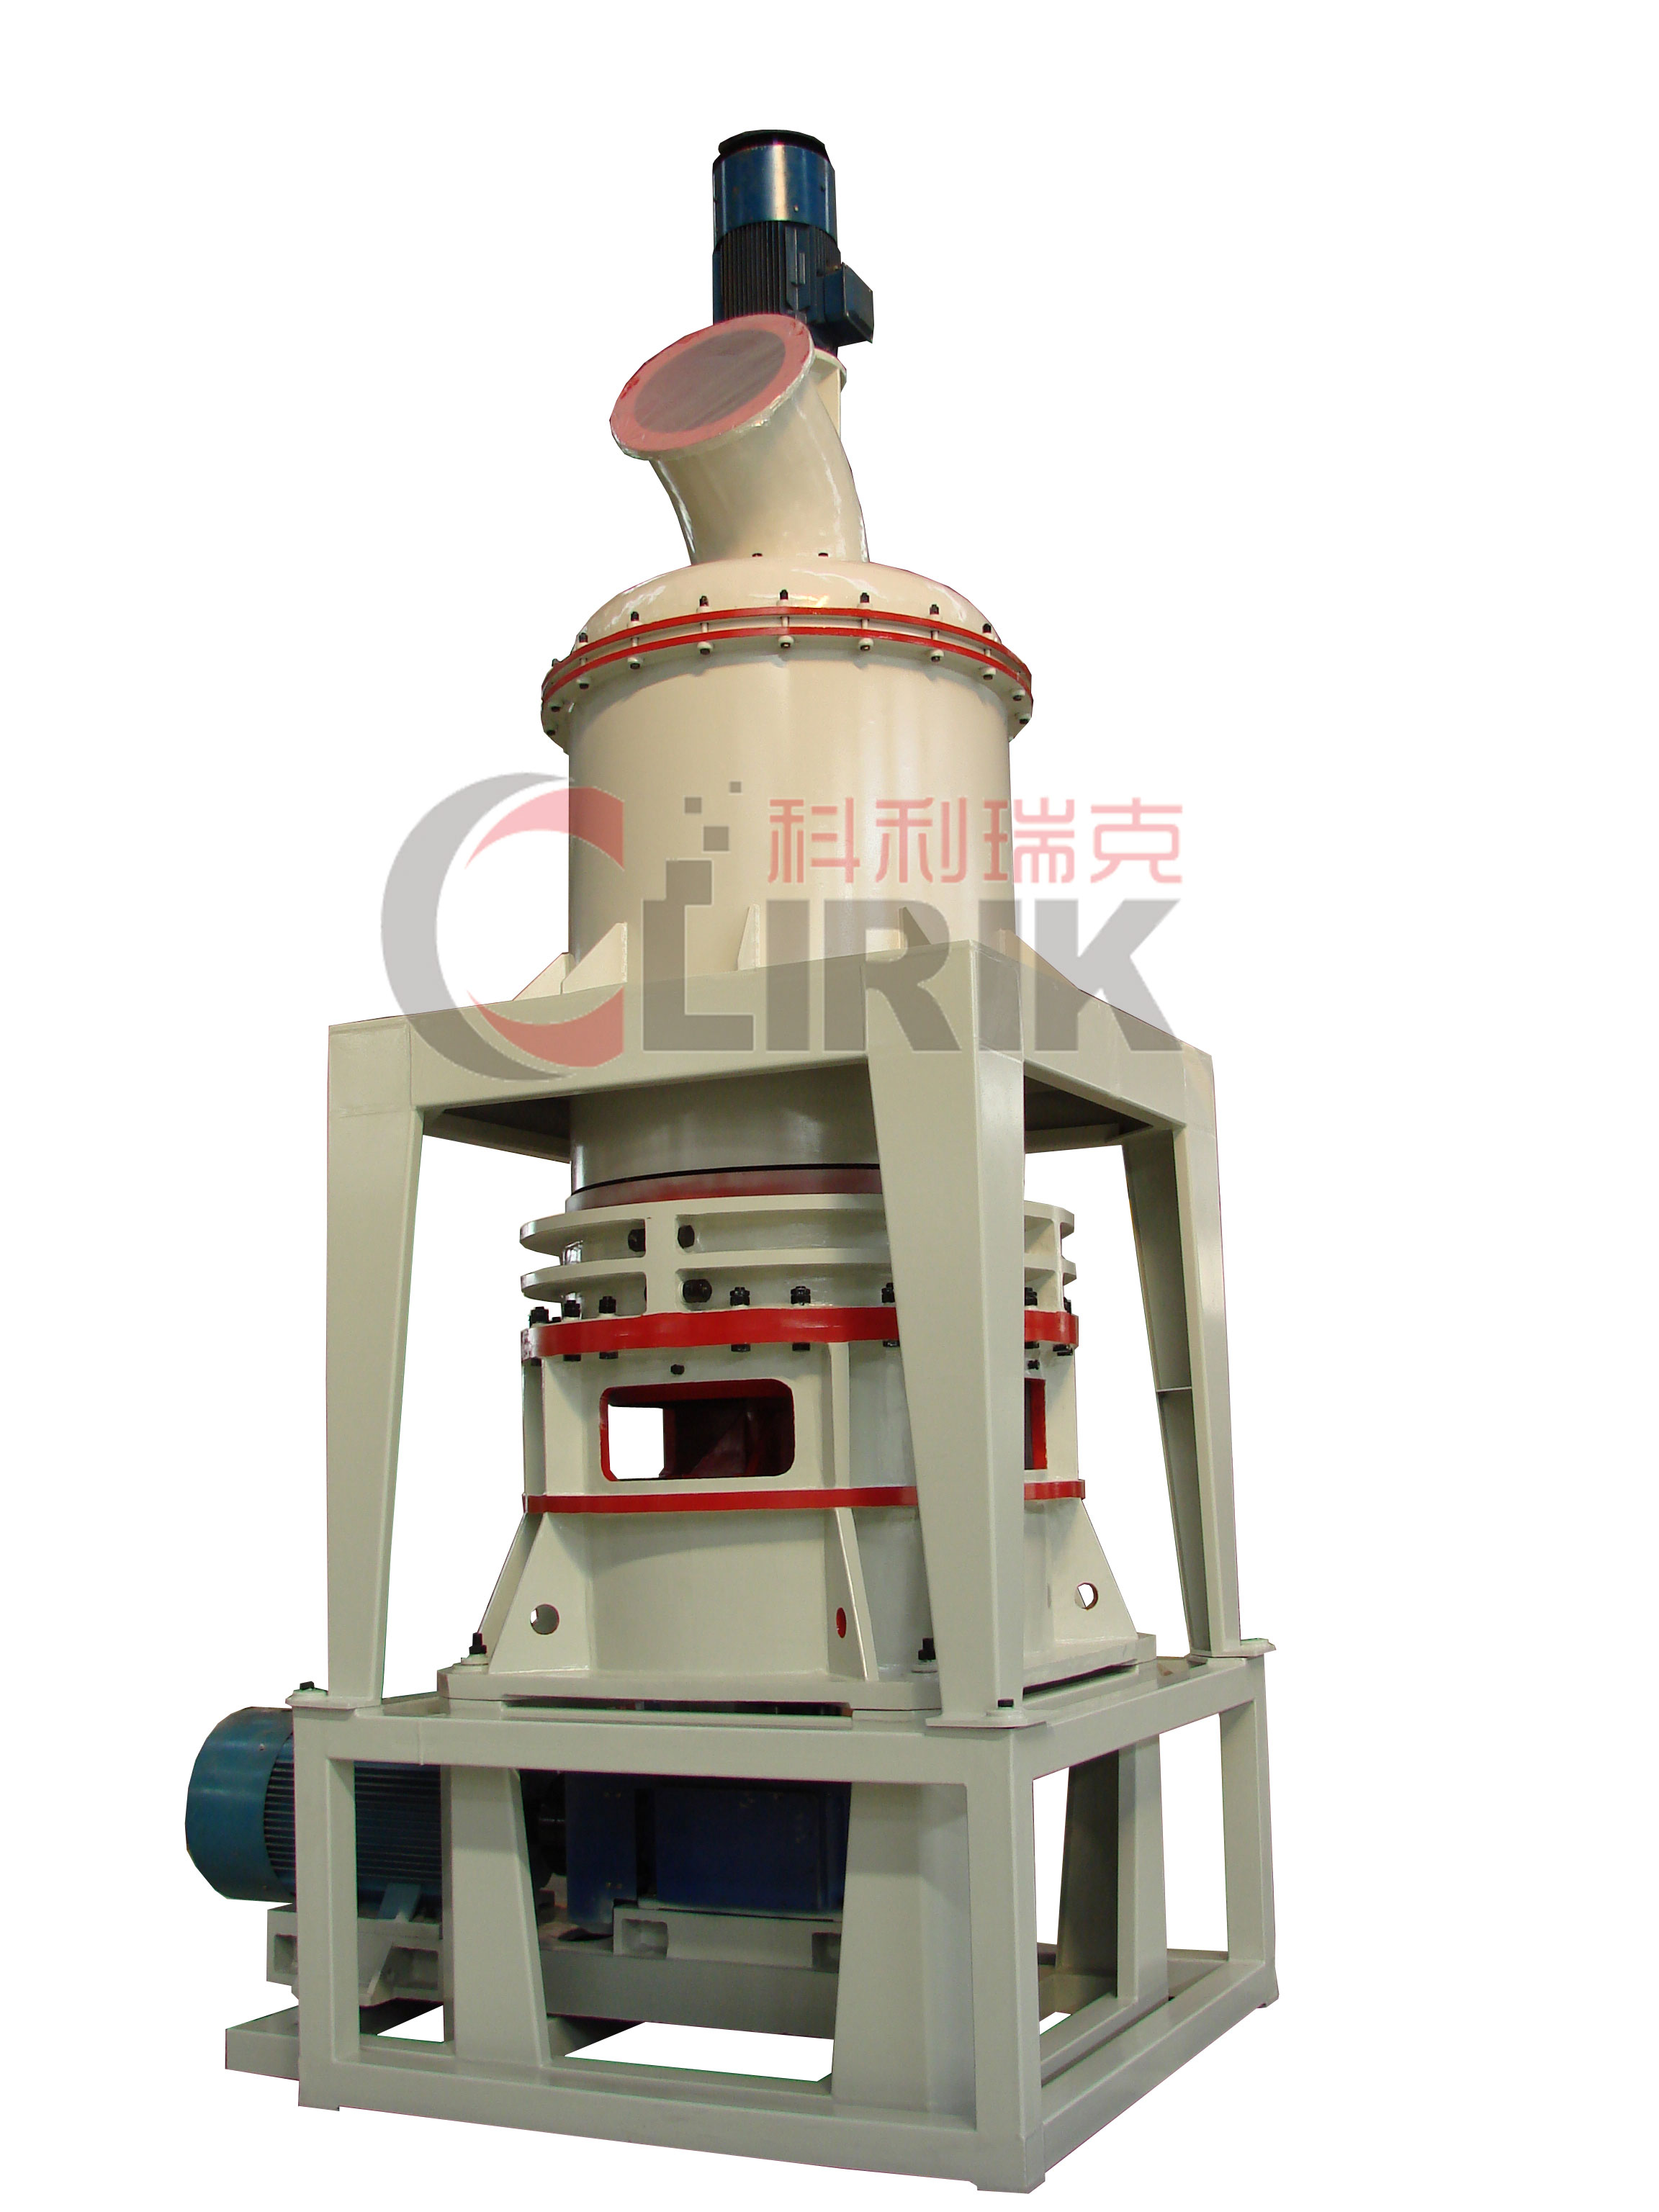 technology application of vertical mill and Vertical coal milll application and advantage vertical coal mill is typically designed to process materials in medium hardness, like soft coal or bituminous coal, and it is mainly used in positive pressure pulverizing system of soft coalit is widely used in electricity field, metallurgy sector, building material industry, chemical industry, etc.